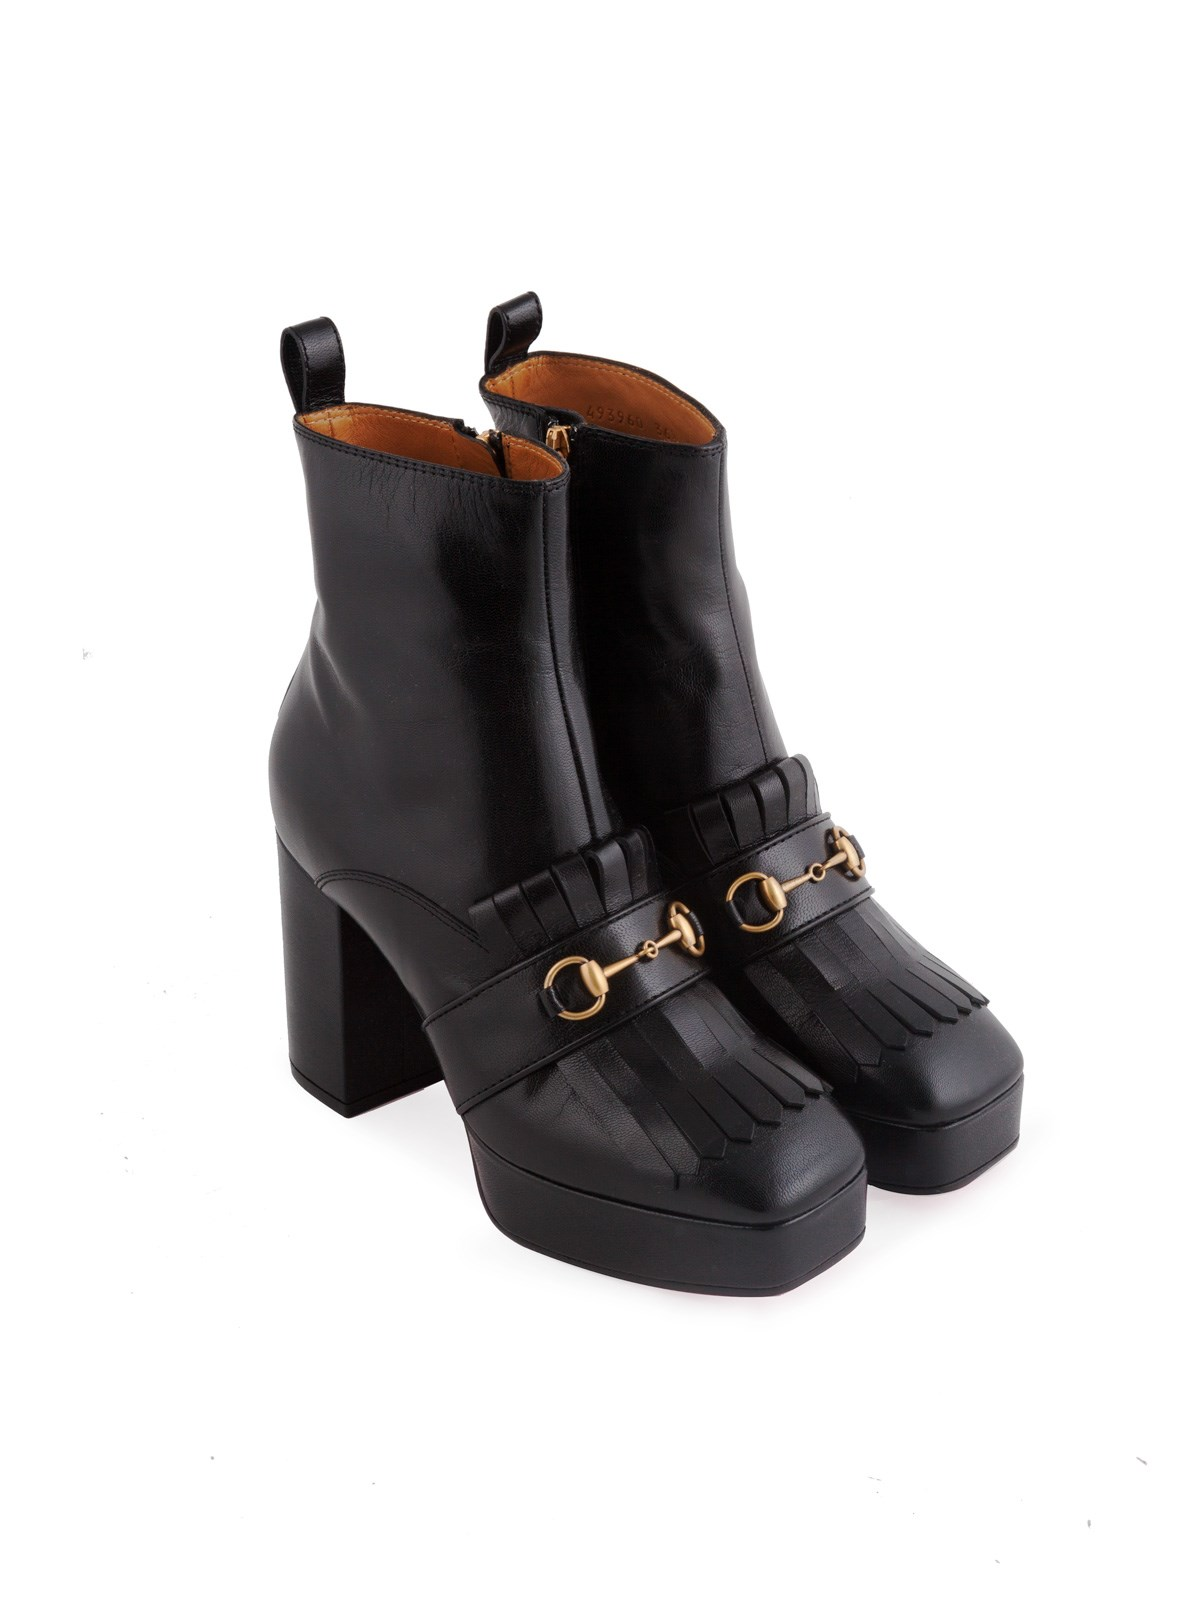 b8b0fbb93 gucci PLATFORM FRINGED BOOTS available on montiboutique.com - 20905